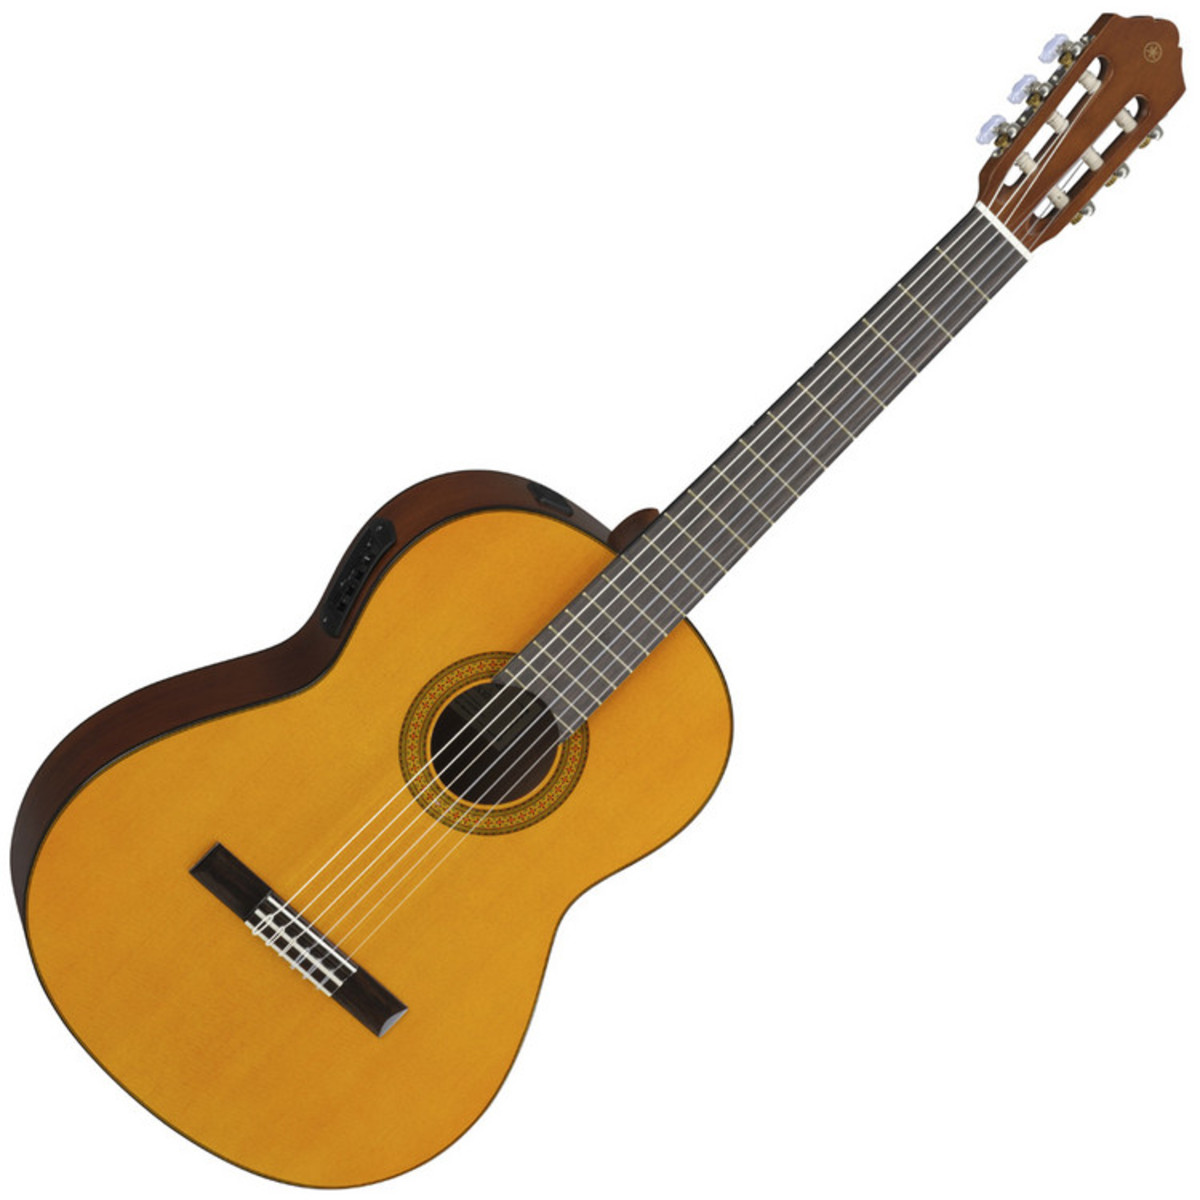 Yamaha cgx102 electro classical guitar at for Yamaha classic guitar